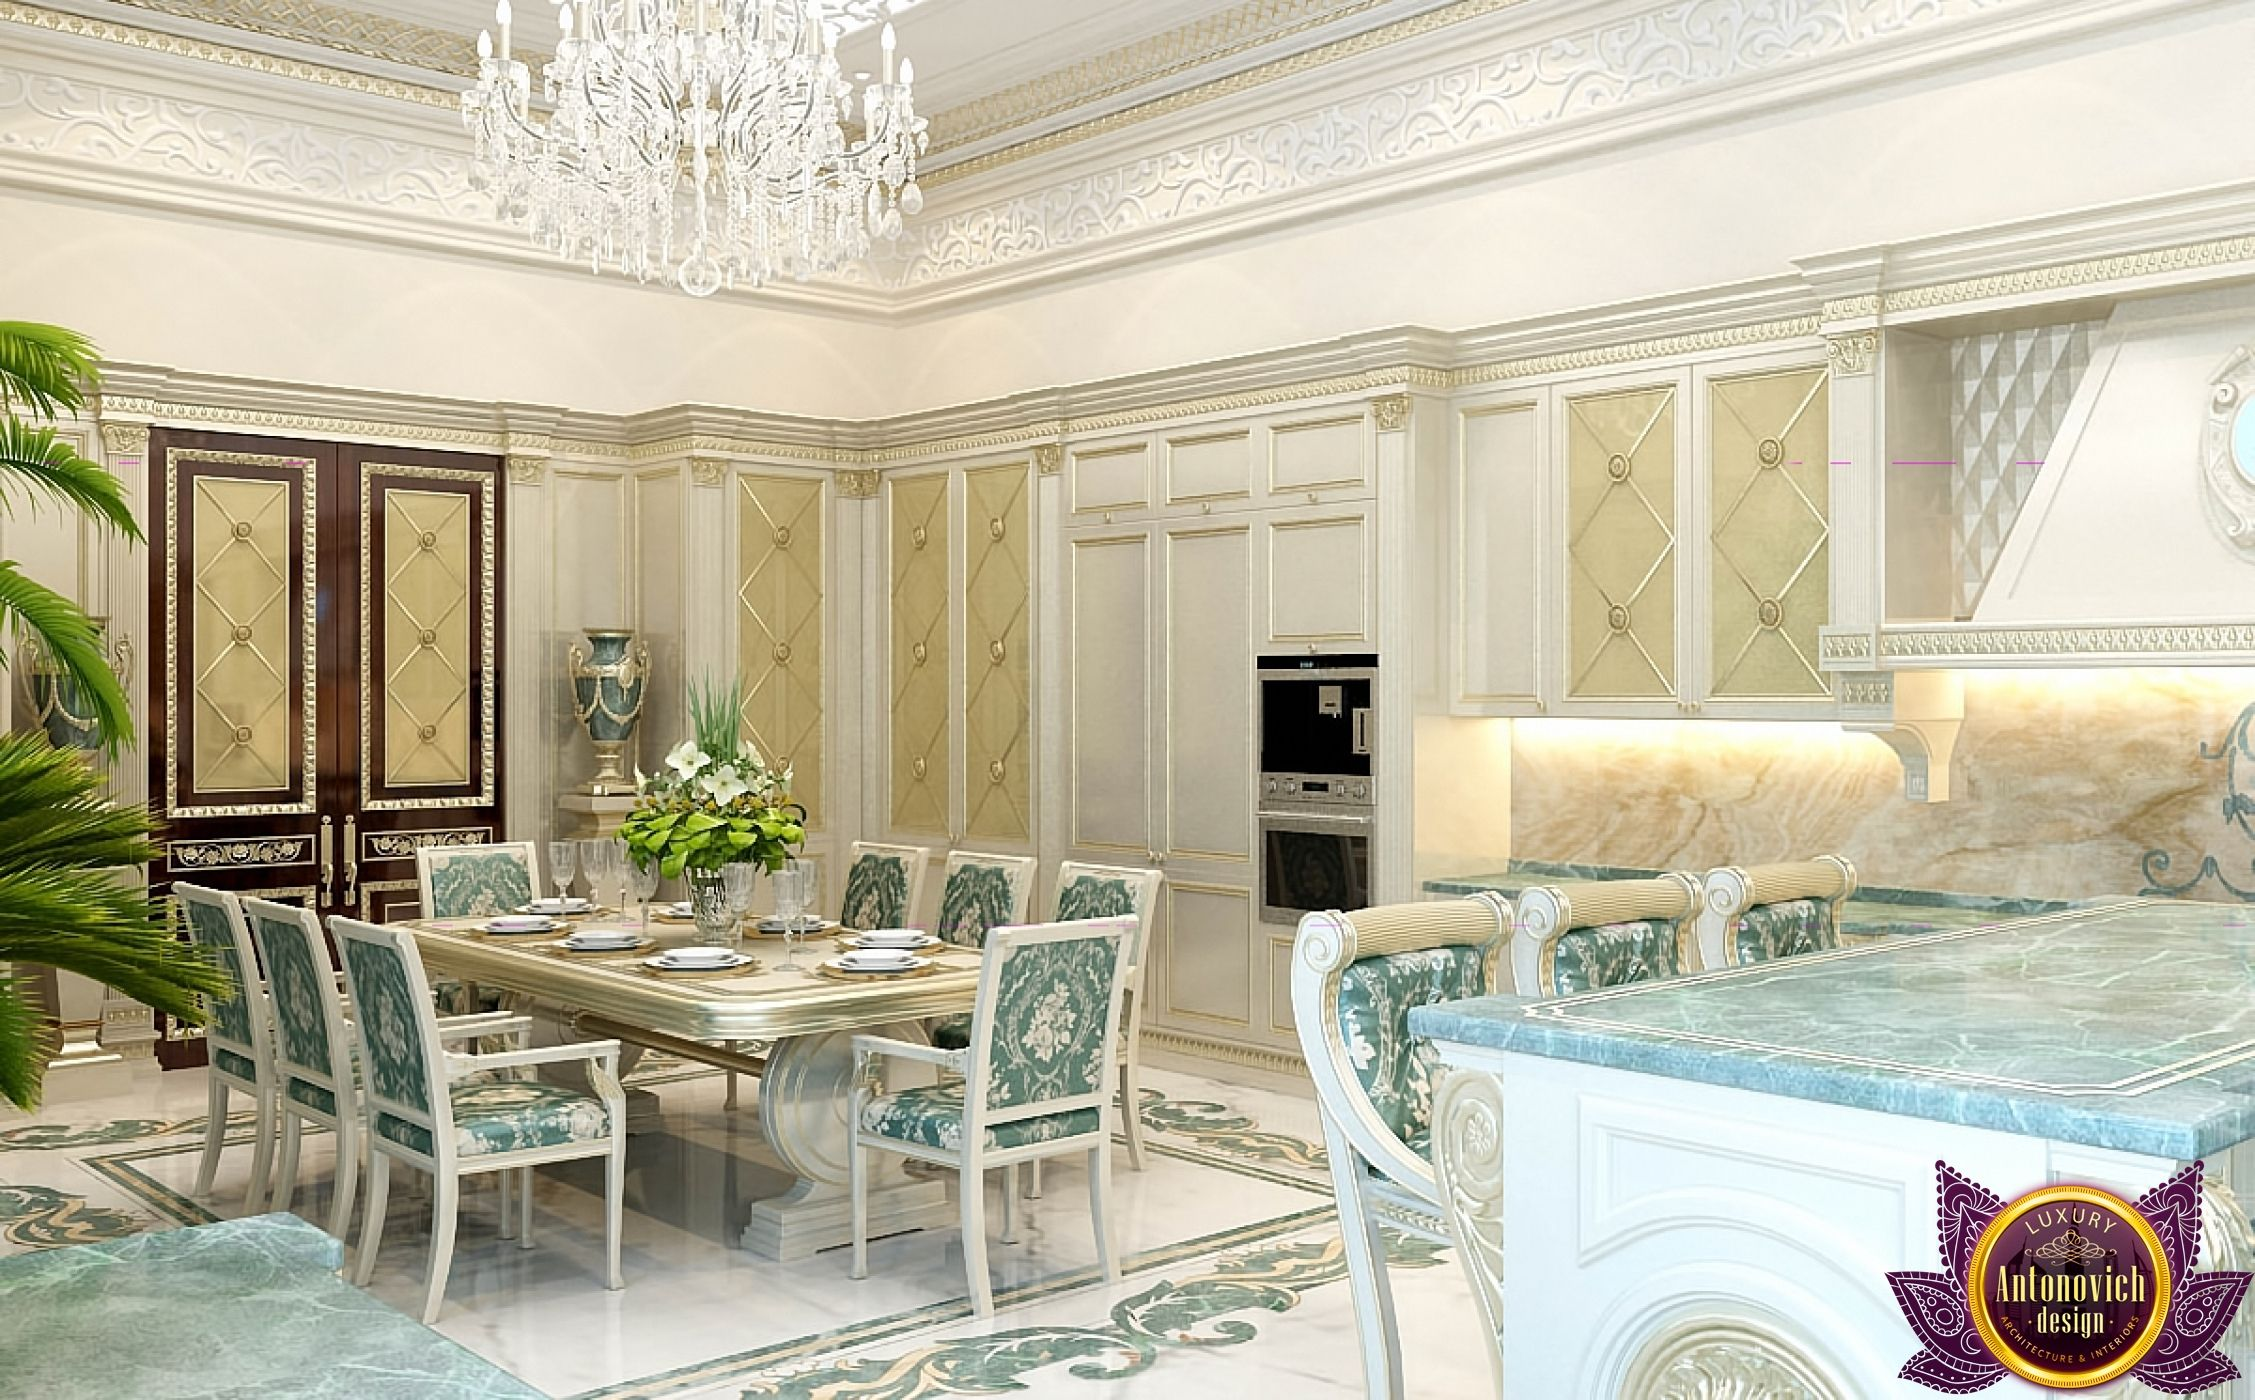 Bedroom And Kitchen Designs Kitchen Design In Dubai Luxury Kitchen Design Photo 6  Bedroom